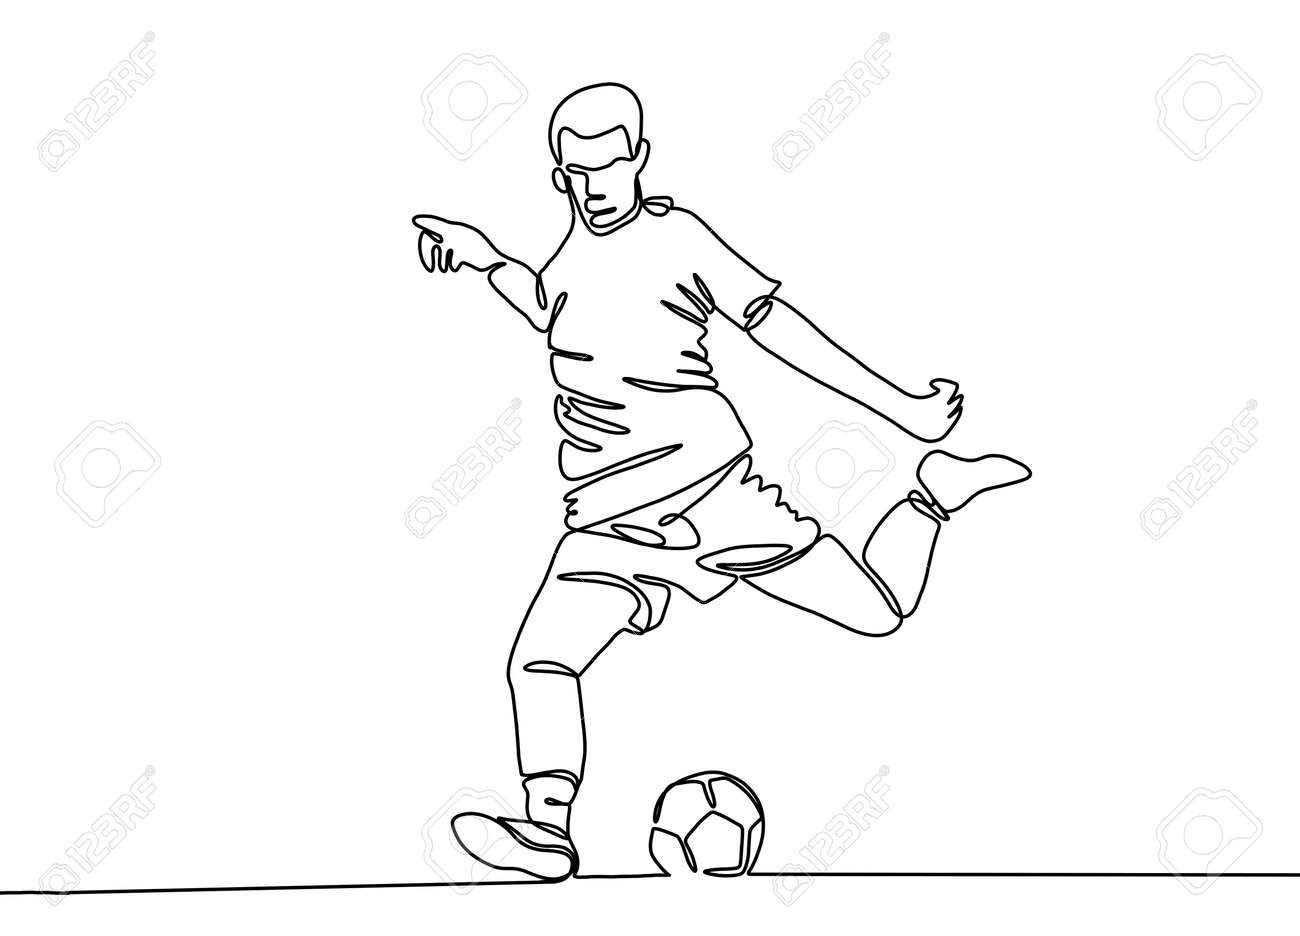 Continuous line drawing. Illustration shows a football player kicks the ball. Soccer. Vector illustration - 103291457